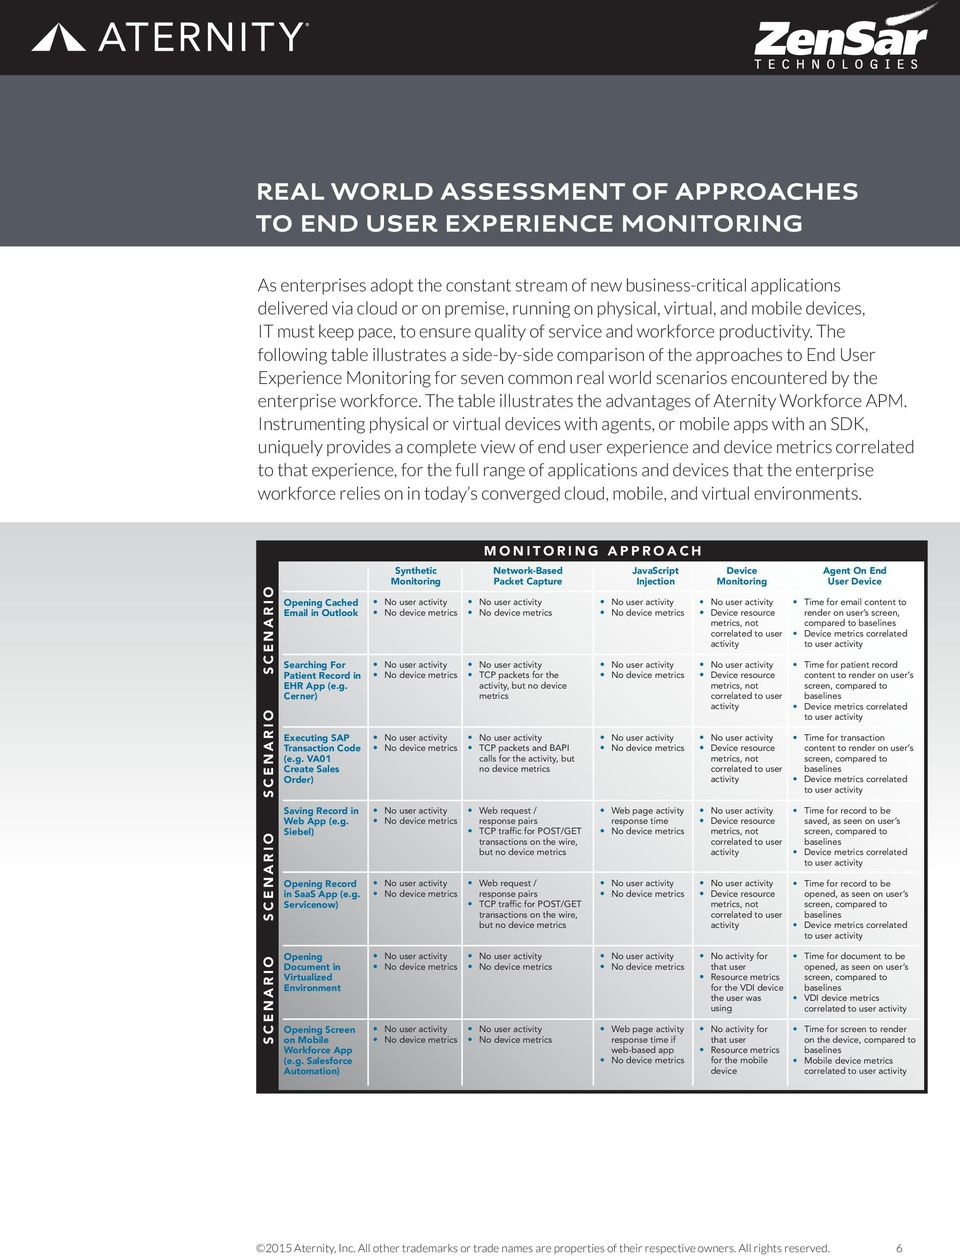 The following table illustrates a side-by-side comparison of the approaches to End User Experience Monitoring for seven common real world scenarios encountered by the enterprise workforce.